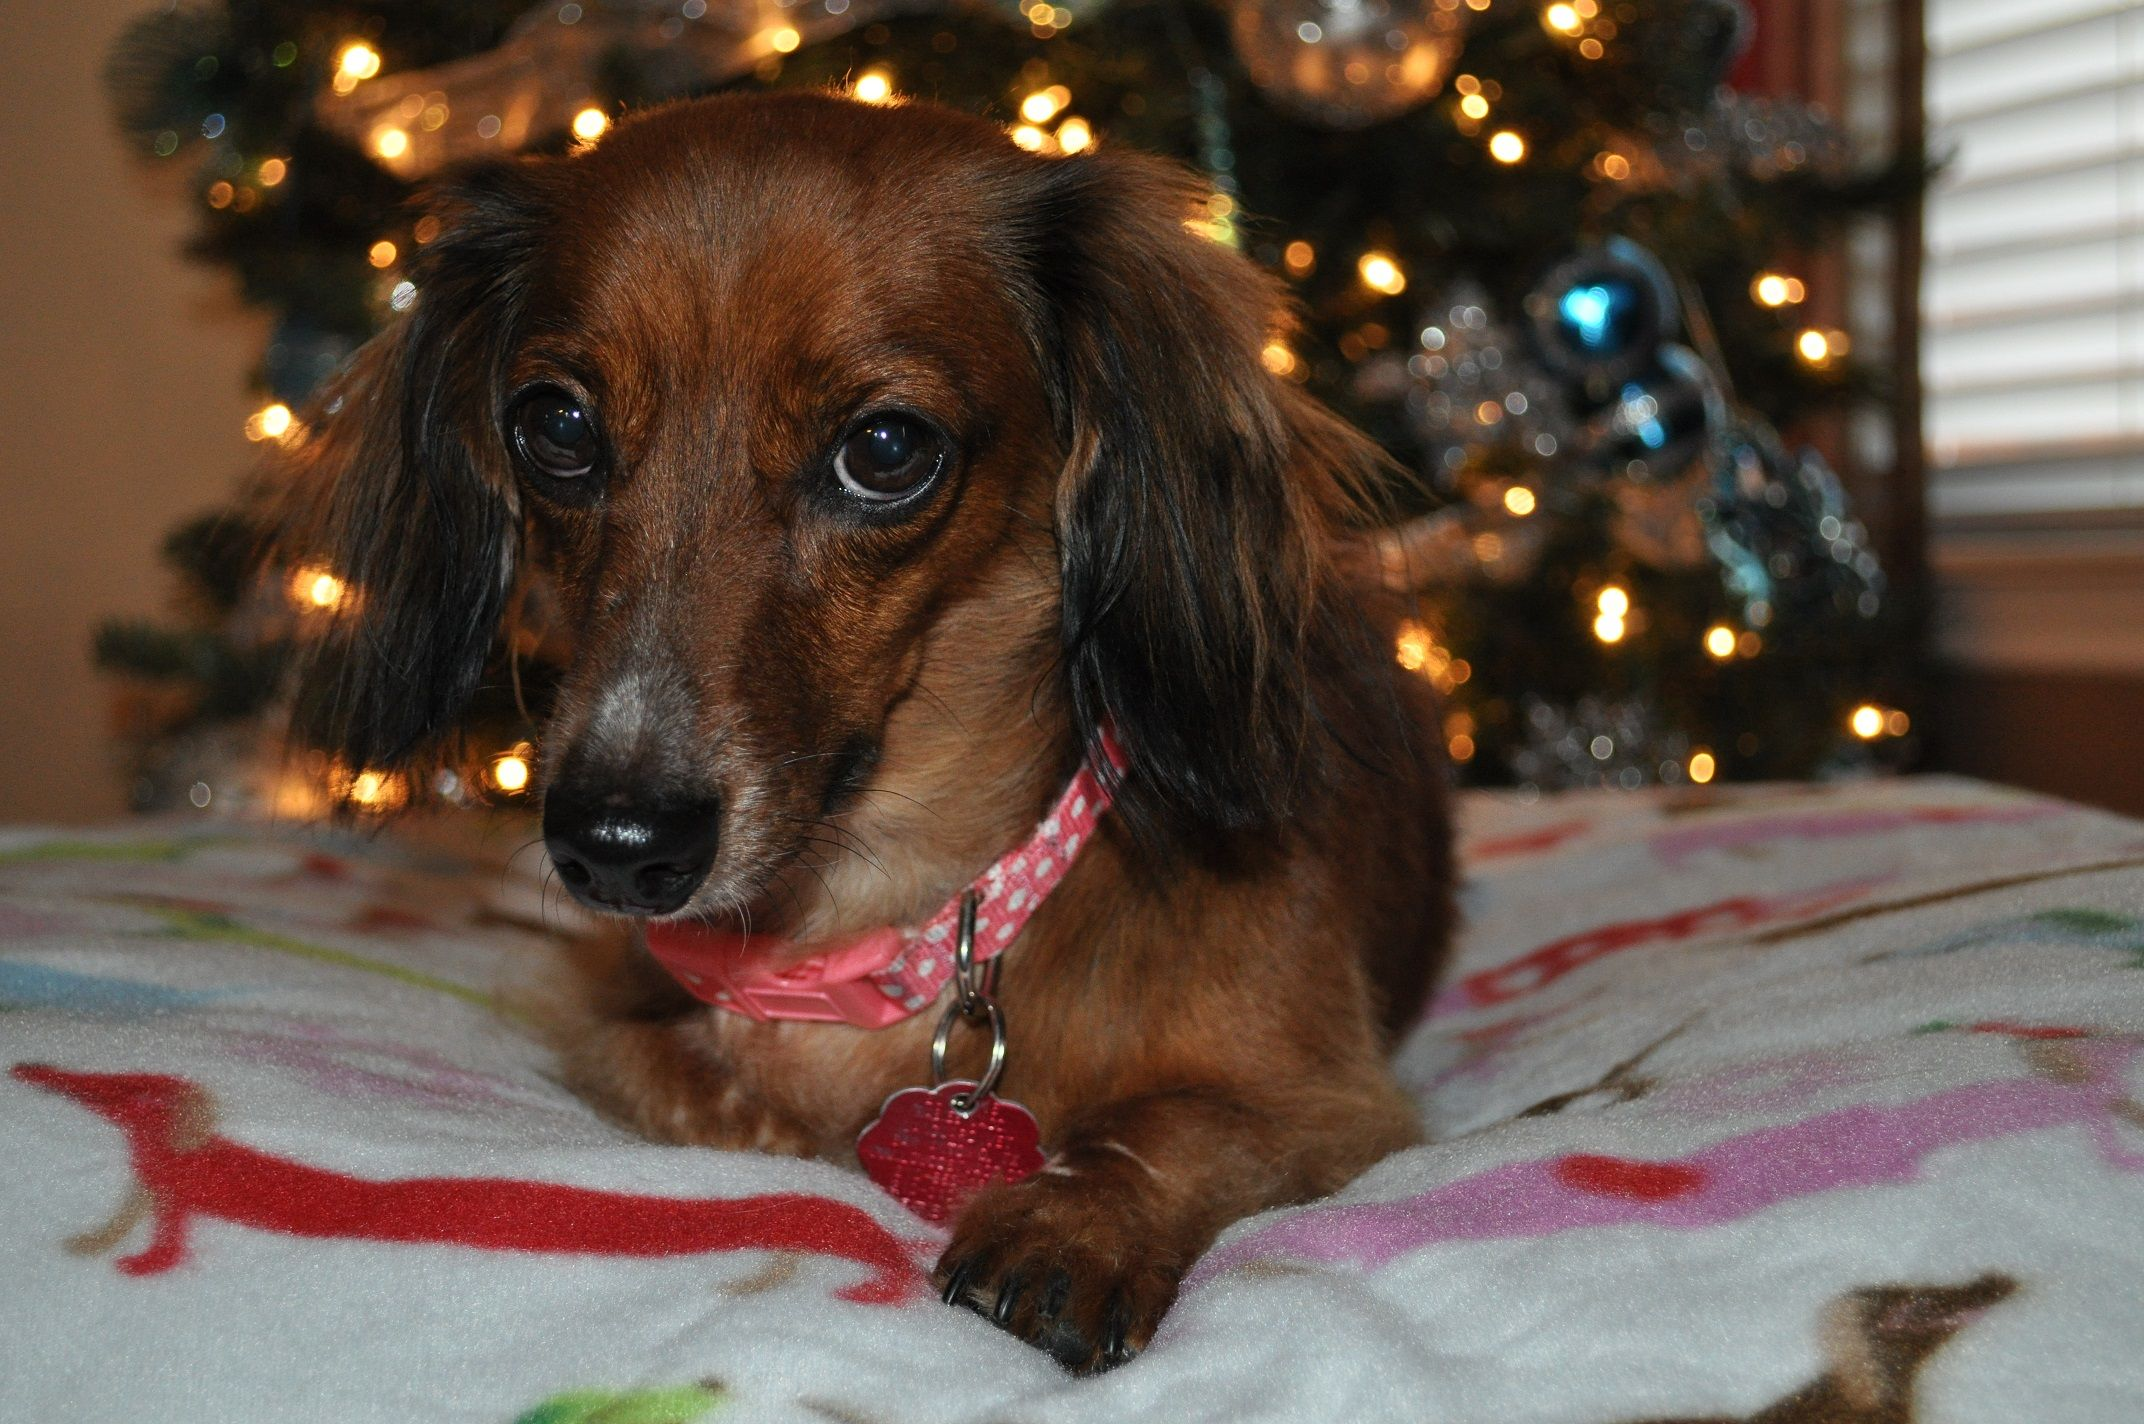 Dachshund dog for Adoption in San Antonio, TX. ADN-418561 on PuppyFinder.com Gender: Female. Age: Adult